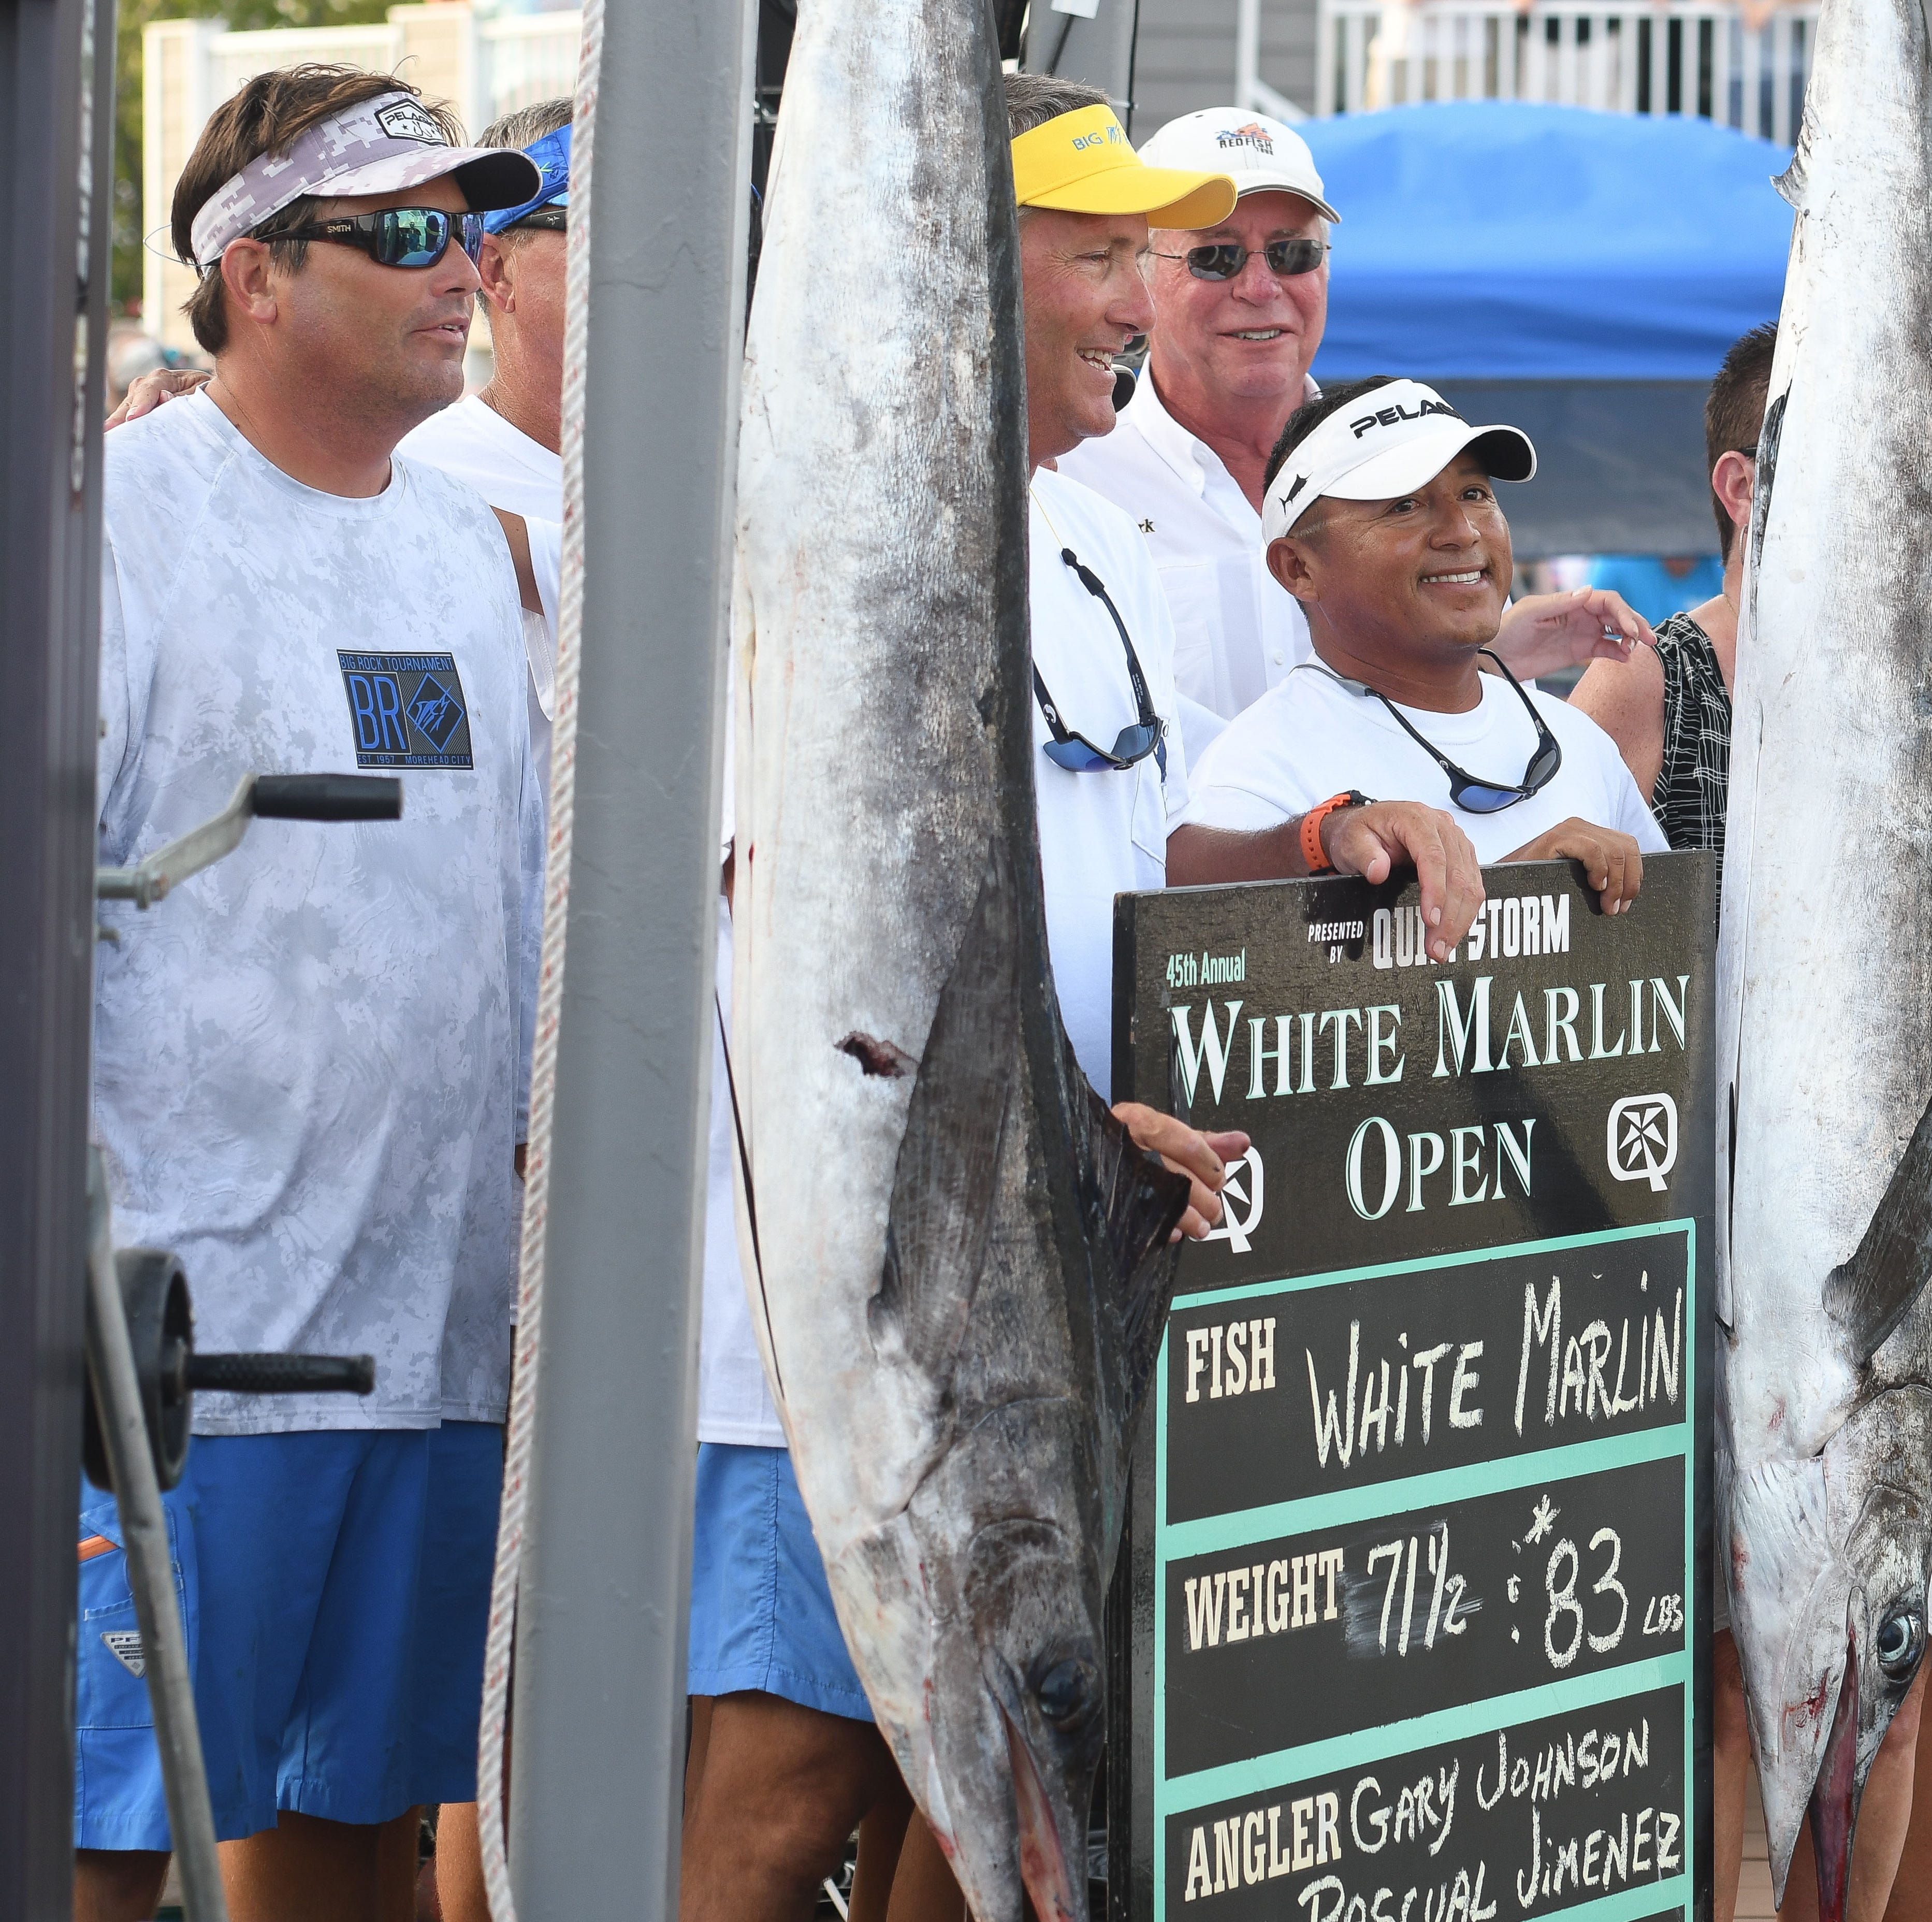 White Marlin Open: Despite tie for biggest catch, international angler wins $2.5 million